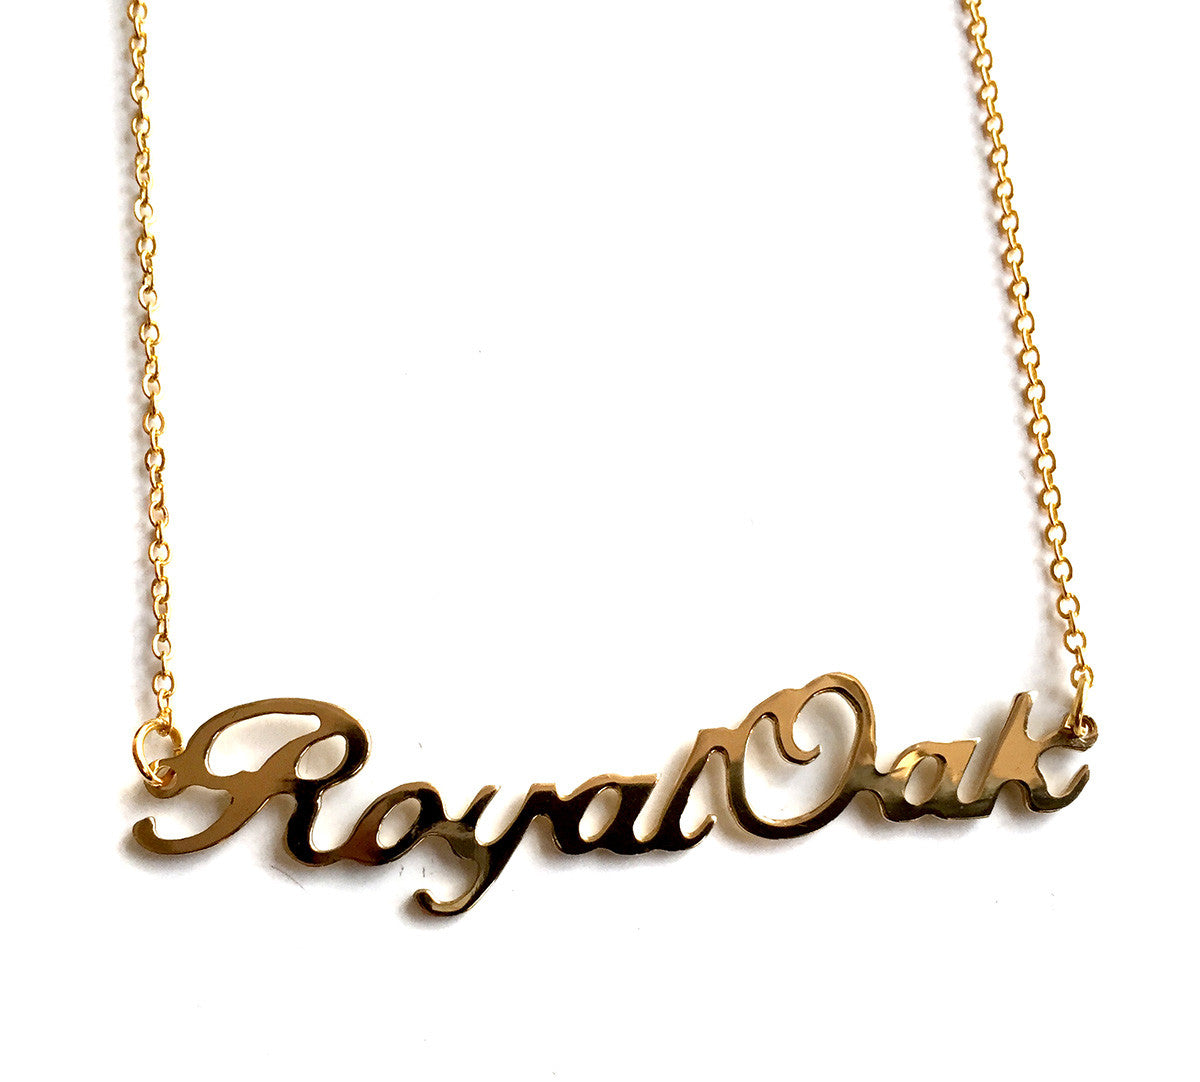 Royal oak script necklace neighborhood name pendant royal oak script necklace gold neighborhood name pendant aloadofball Gallery